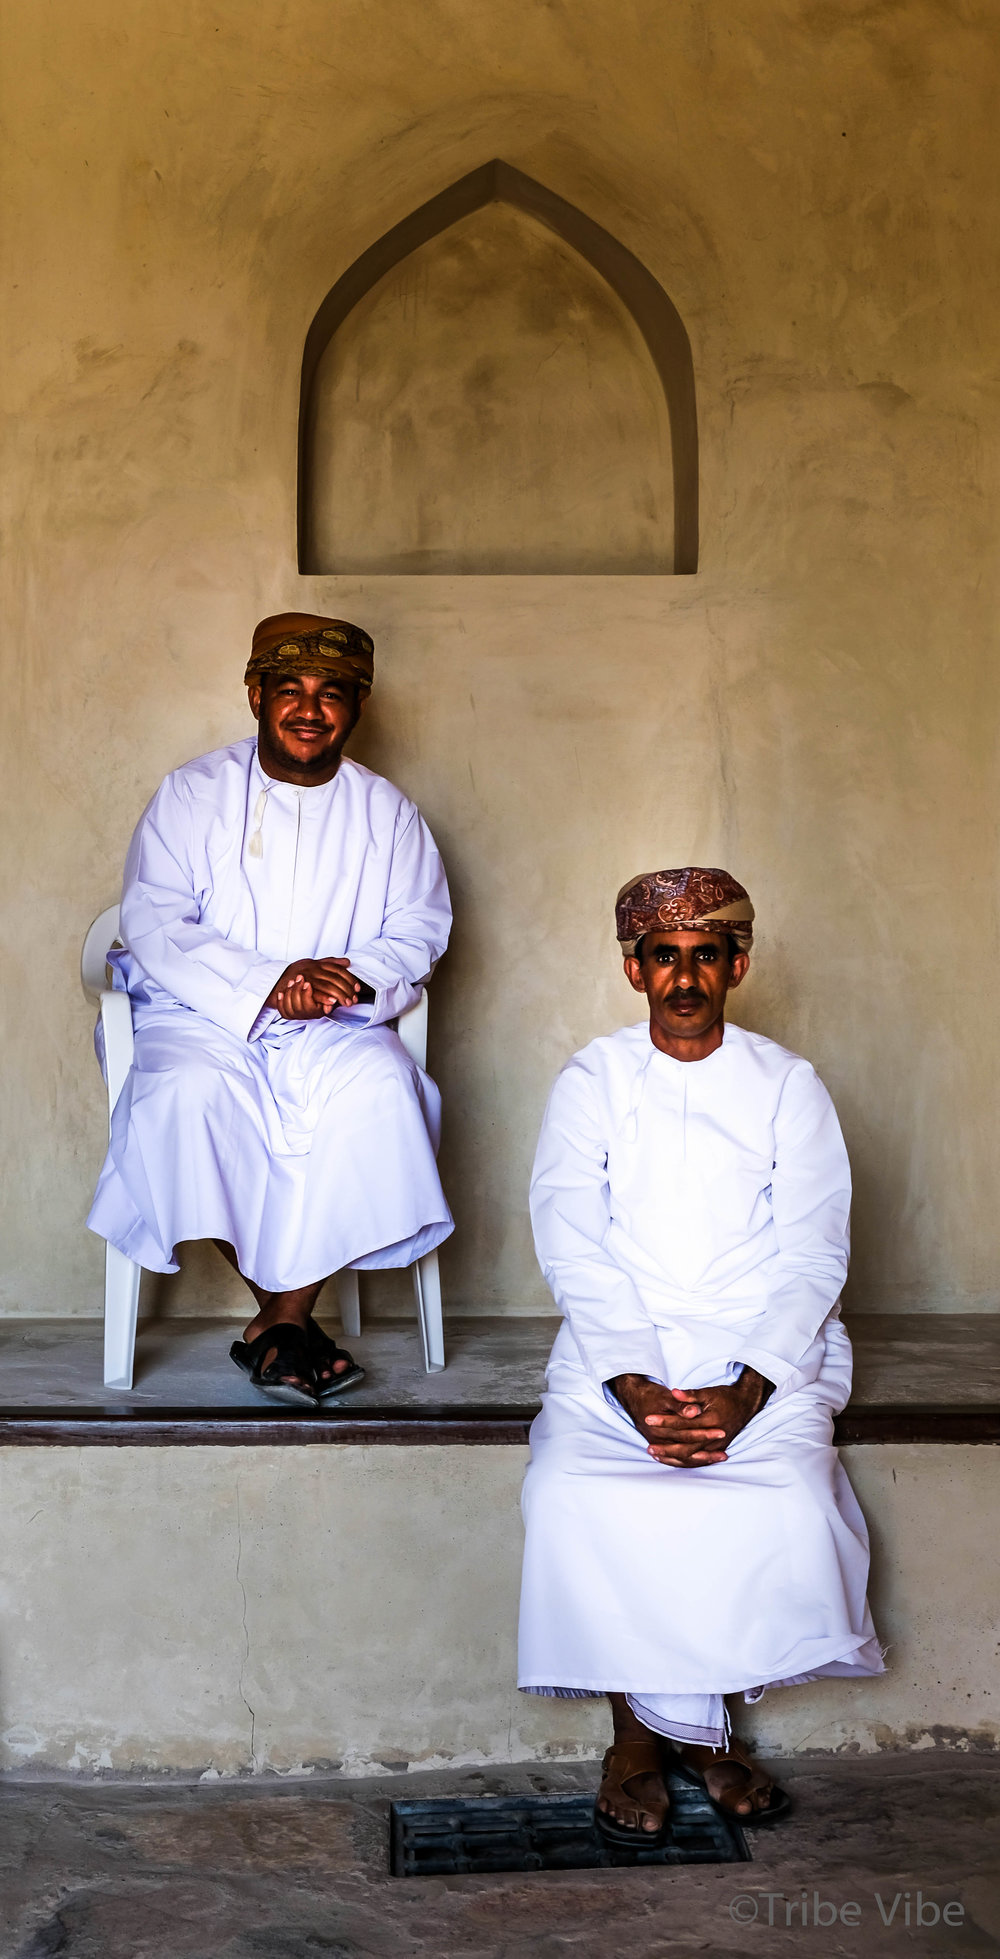 Omani men at Bahla Fort, Oman